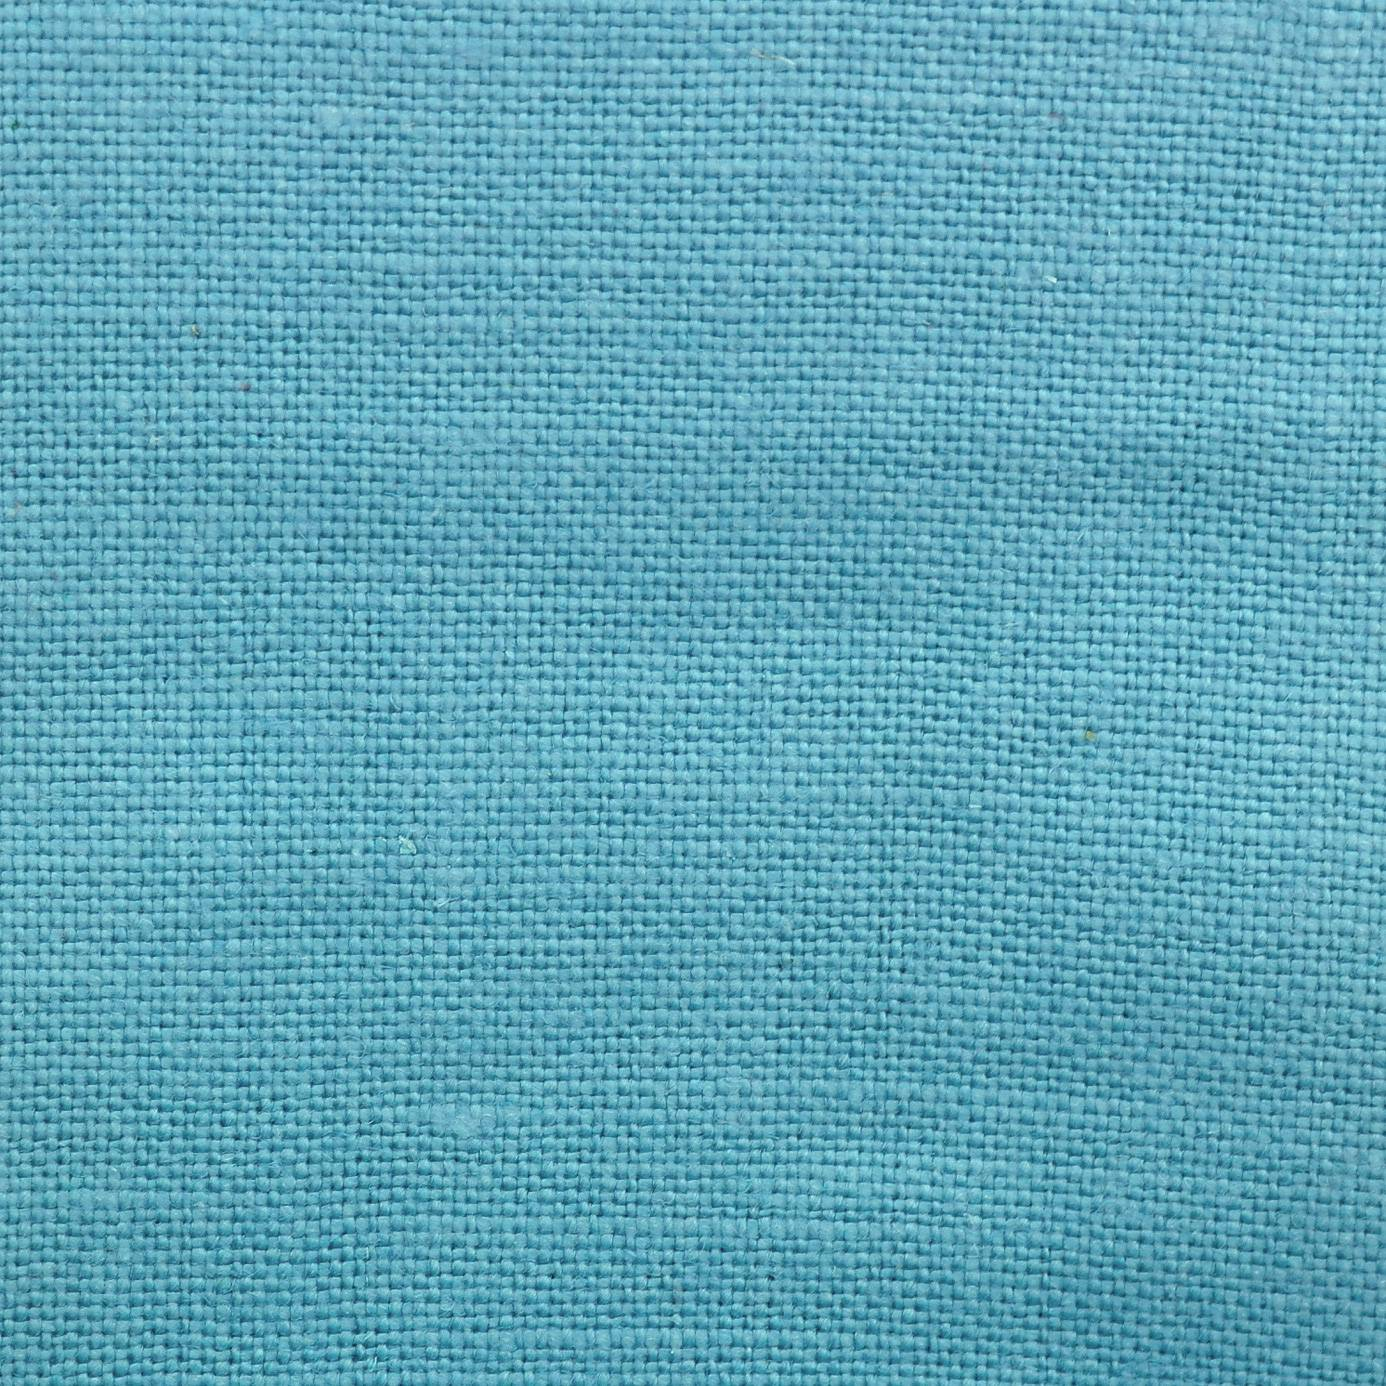 Roman Blinds In Conway Fabric Sky Blue F1268 27 Designers Guild Conway Fabrics Collection